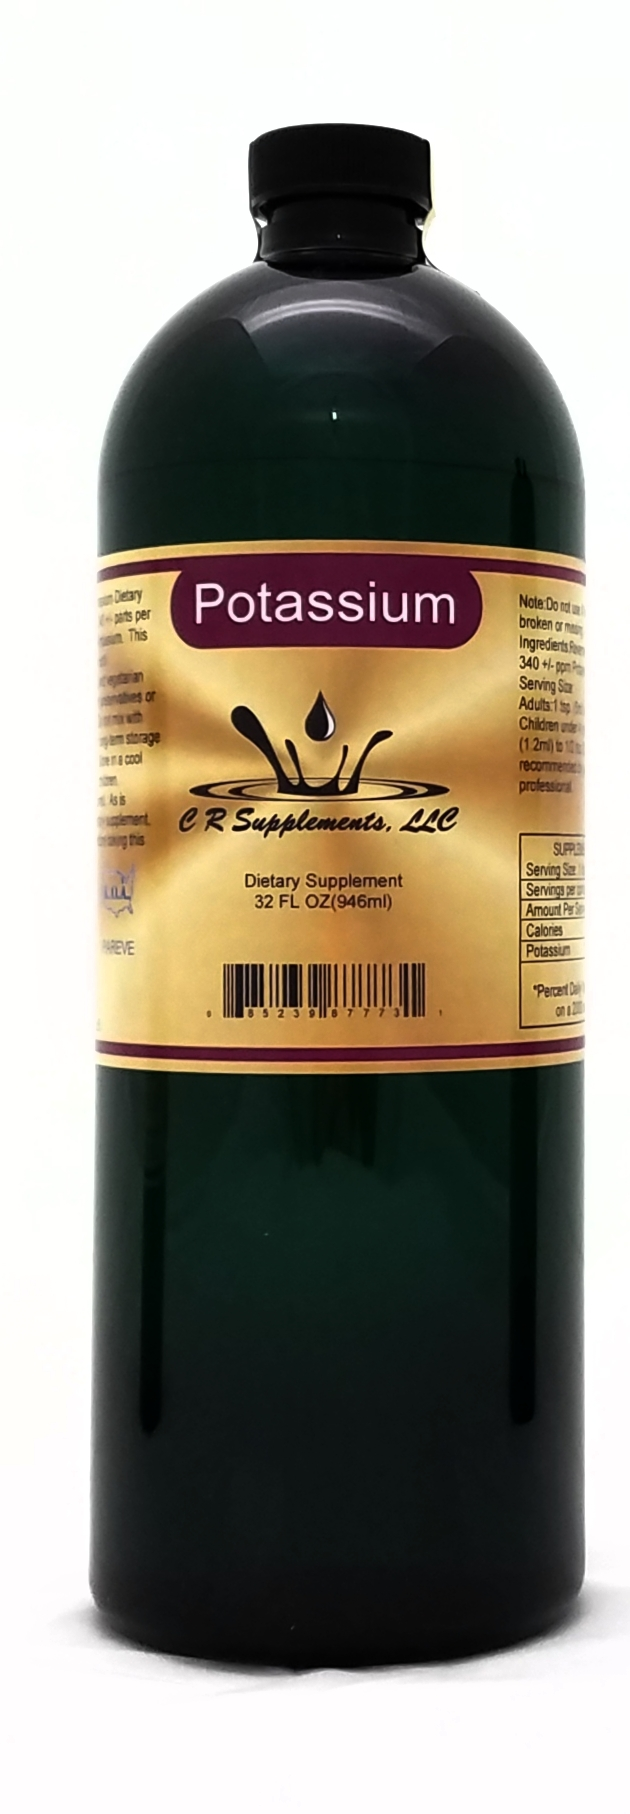 Potassium By C R Supplements, LLC